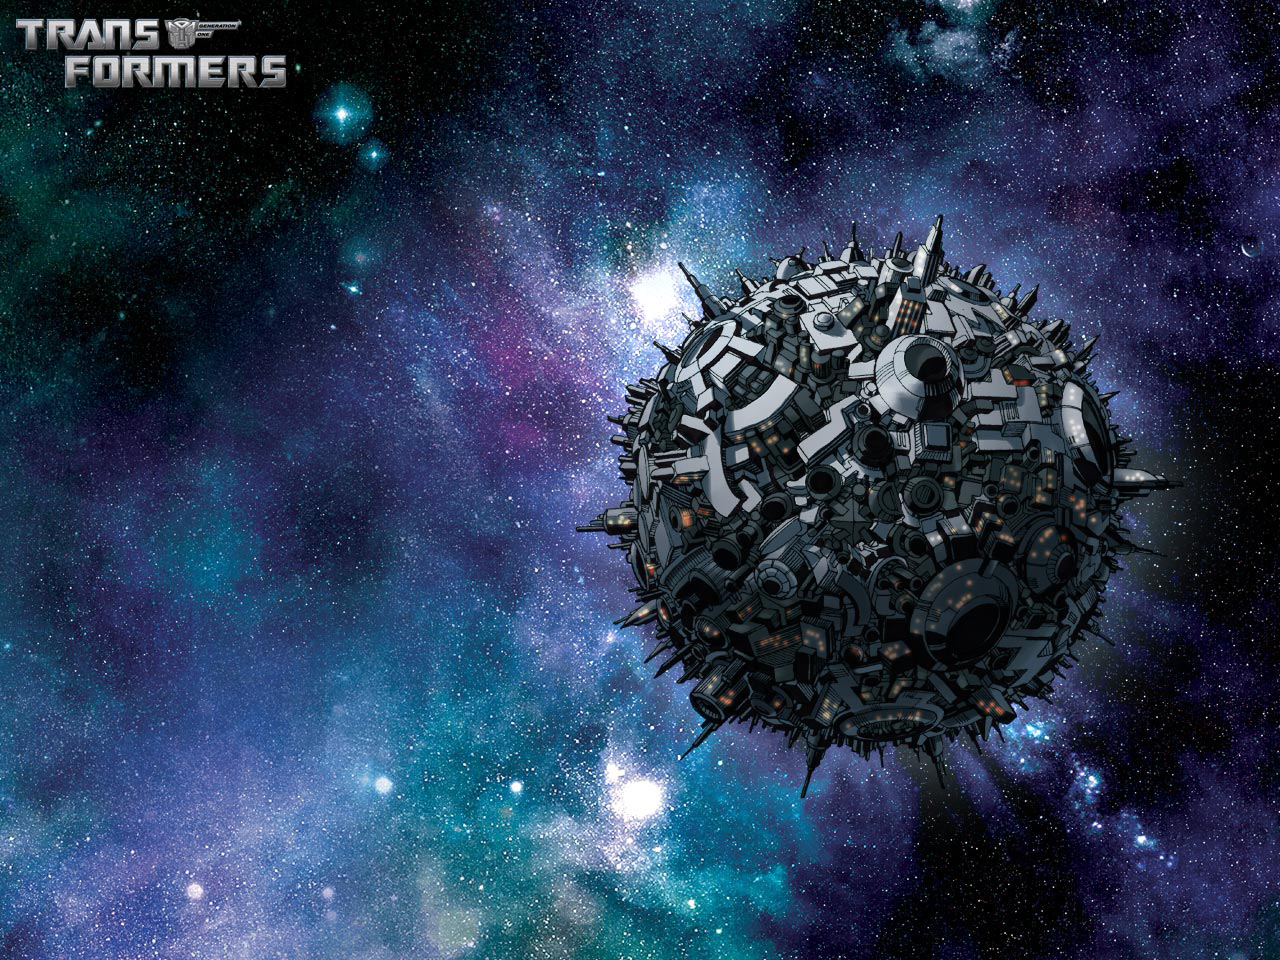 Transformers Fall Of Cybertron Wallpaper 1920x1080 Transformers Matrix Wallpapers Cybertron Hd